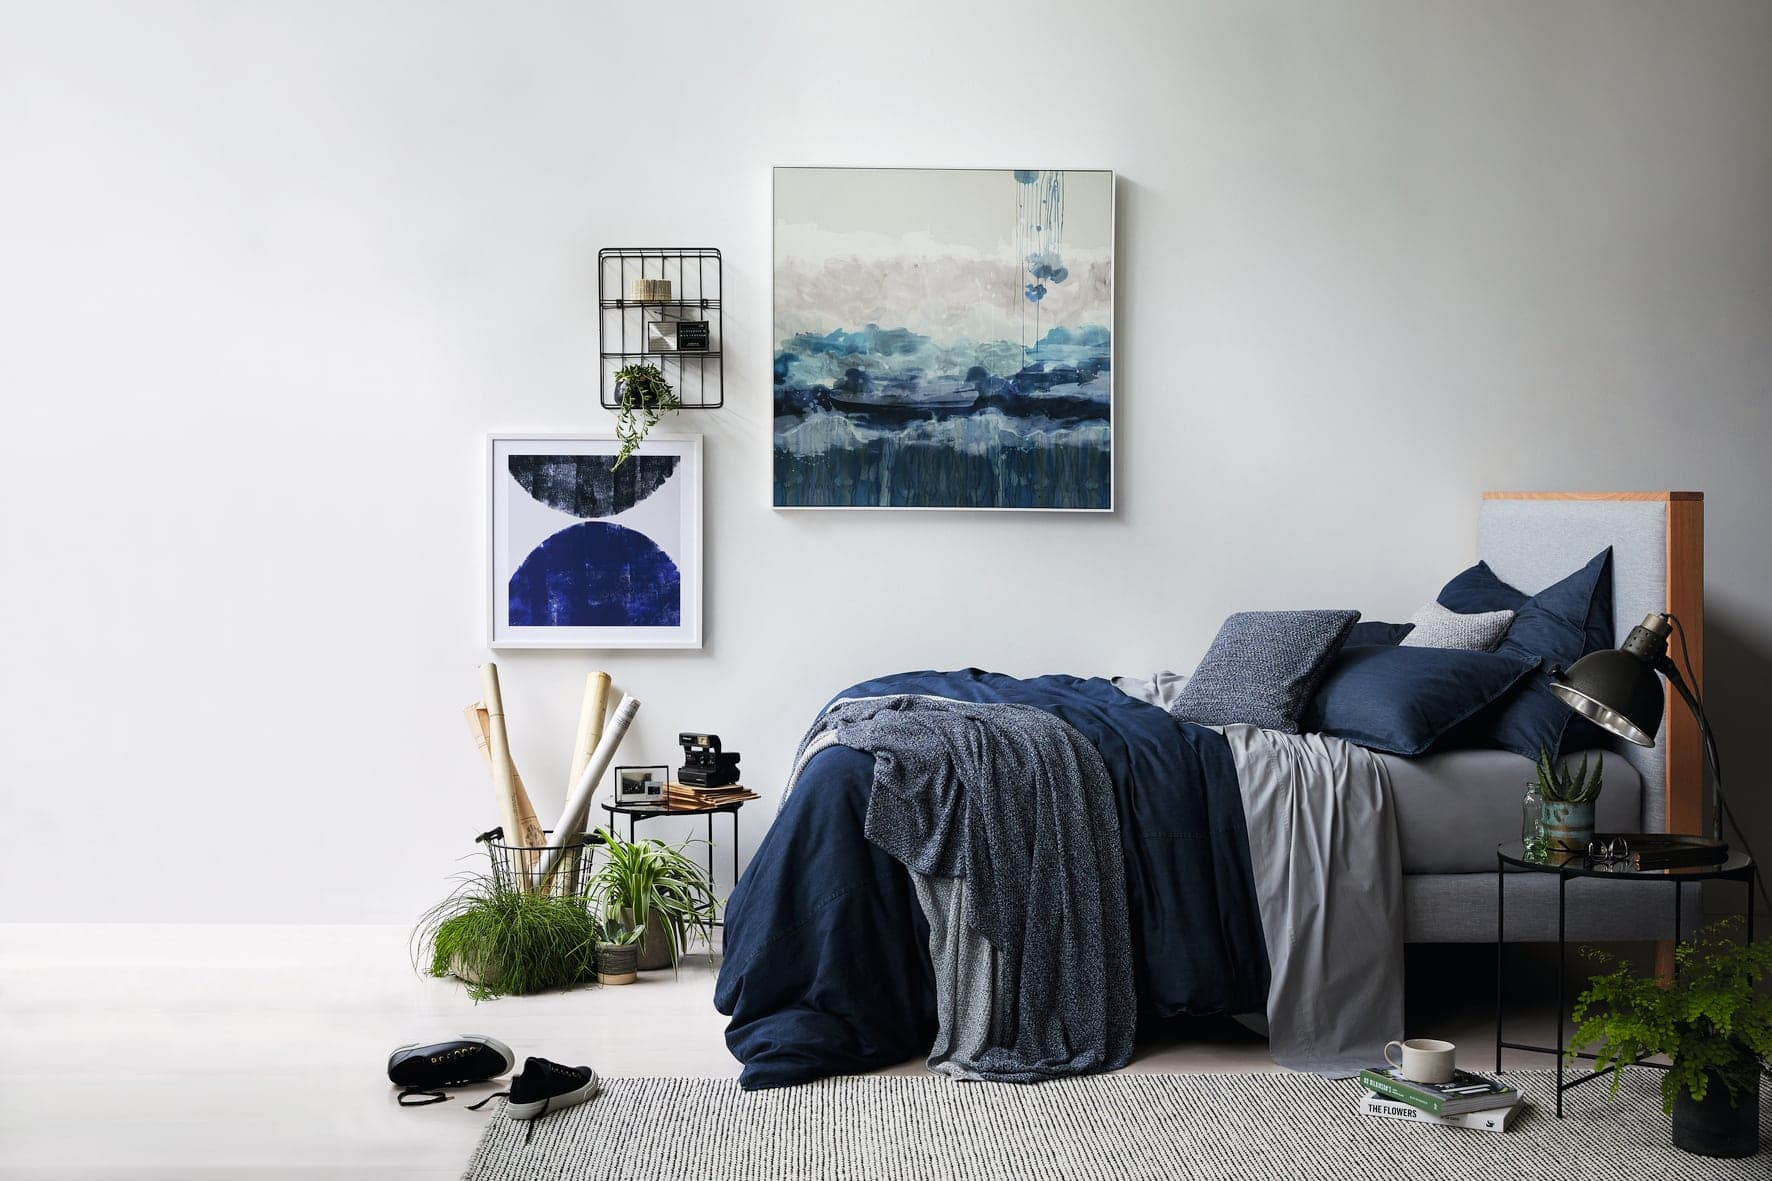 blue and grey bedroom ideas with sheridan bedding in navy blue and charcoal